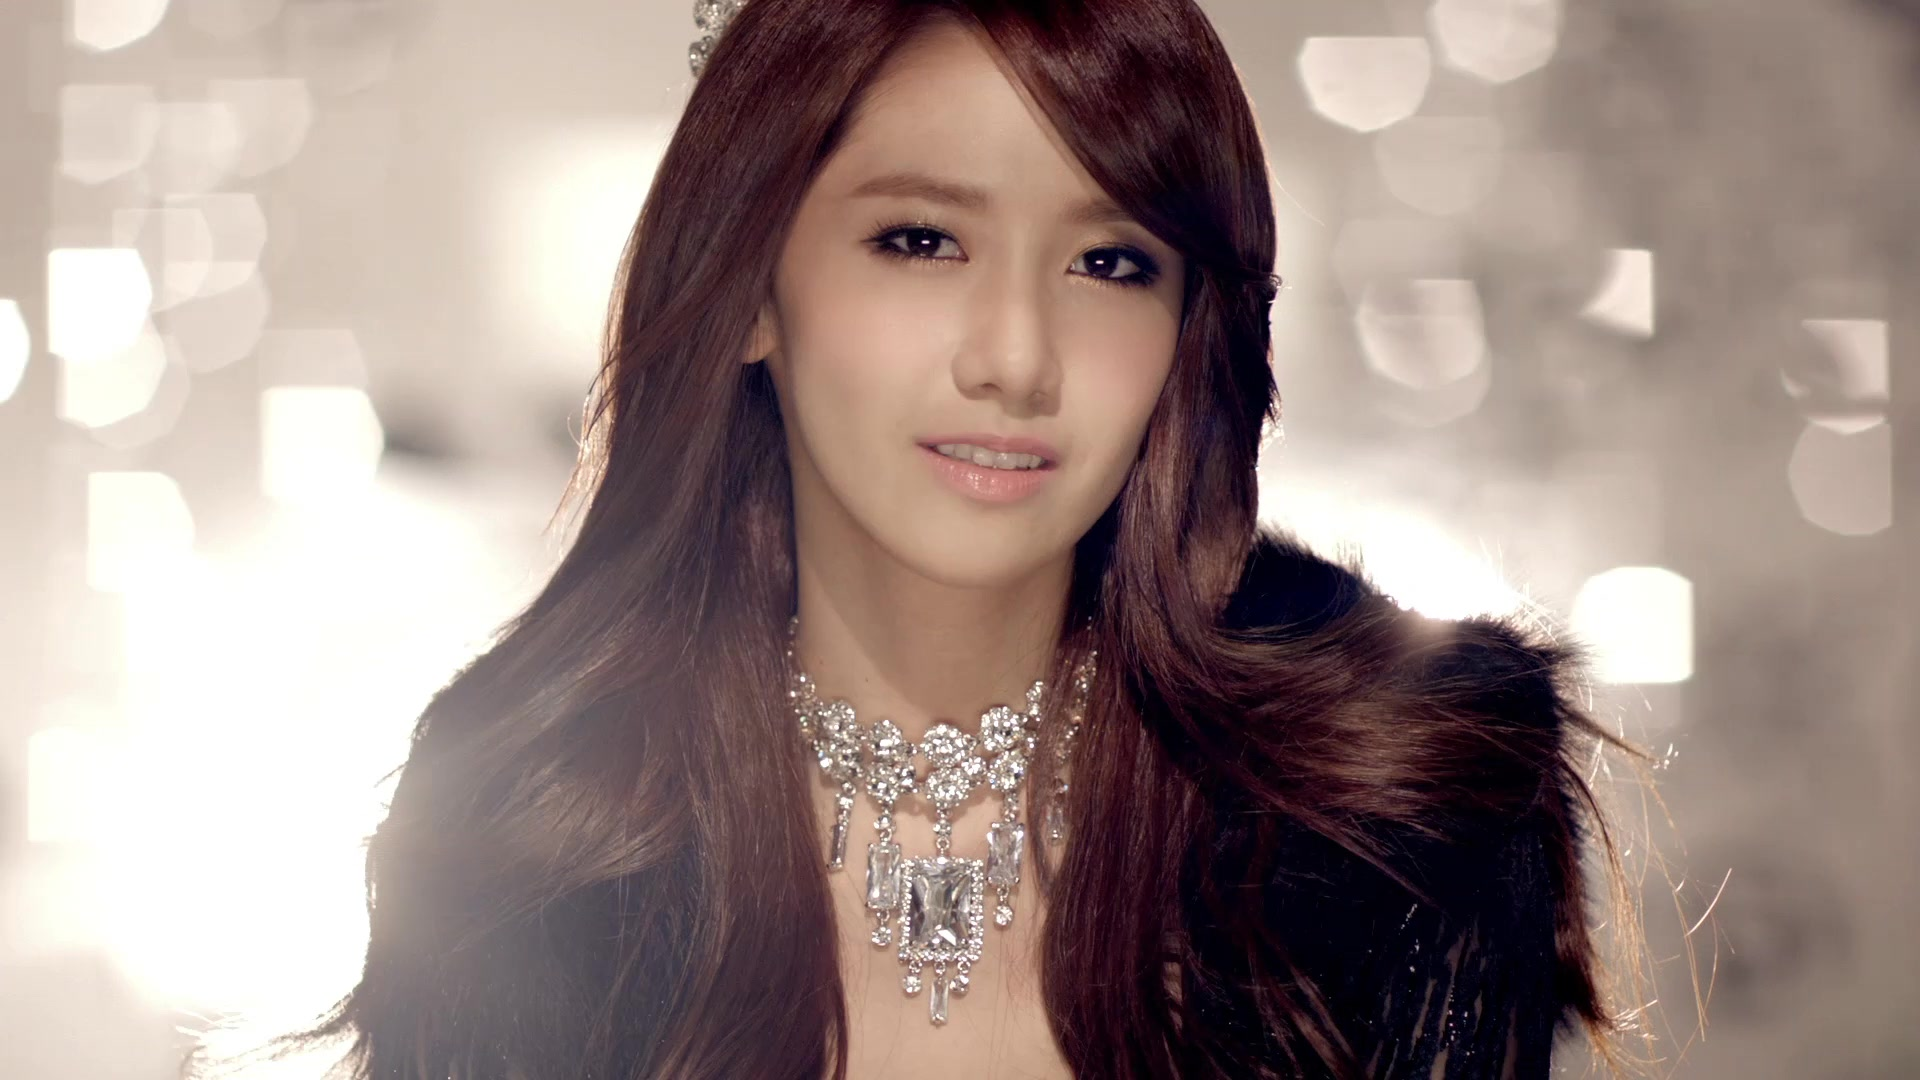 Yoona Snsd The Boys - Hot Girls Wallpaper